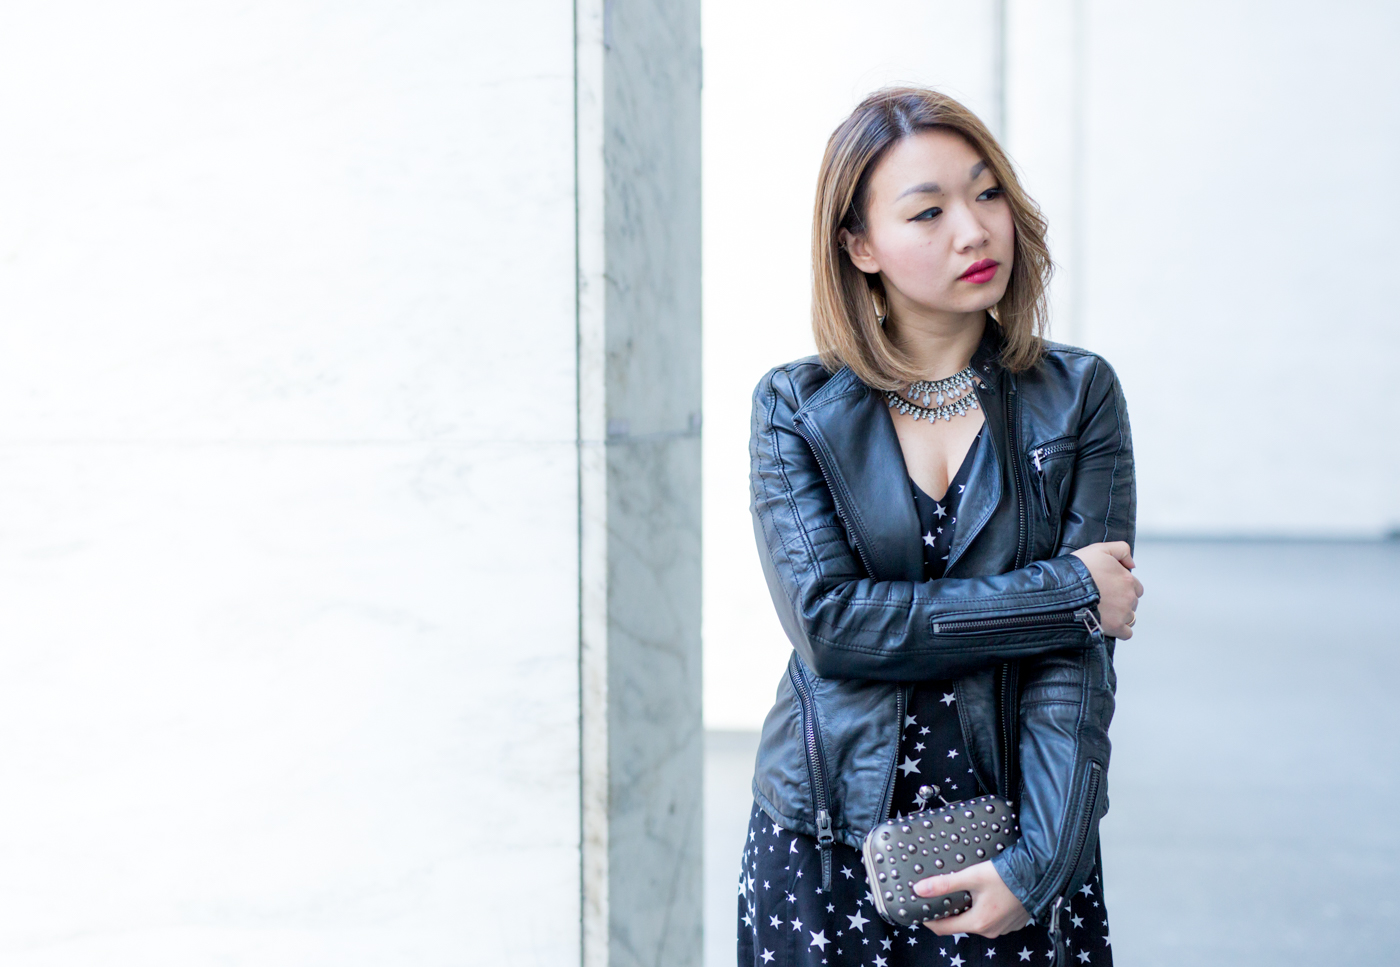 Monotone colors with a pop of red | The Chic Diary